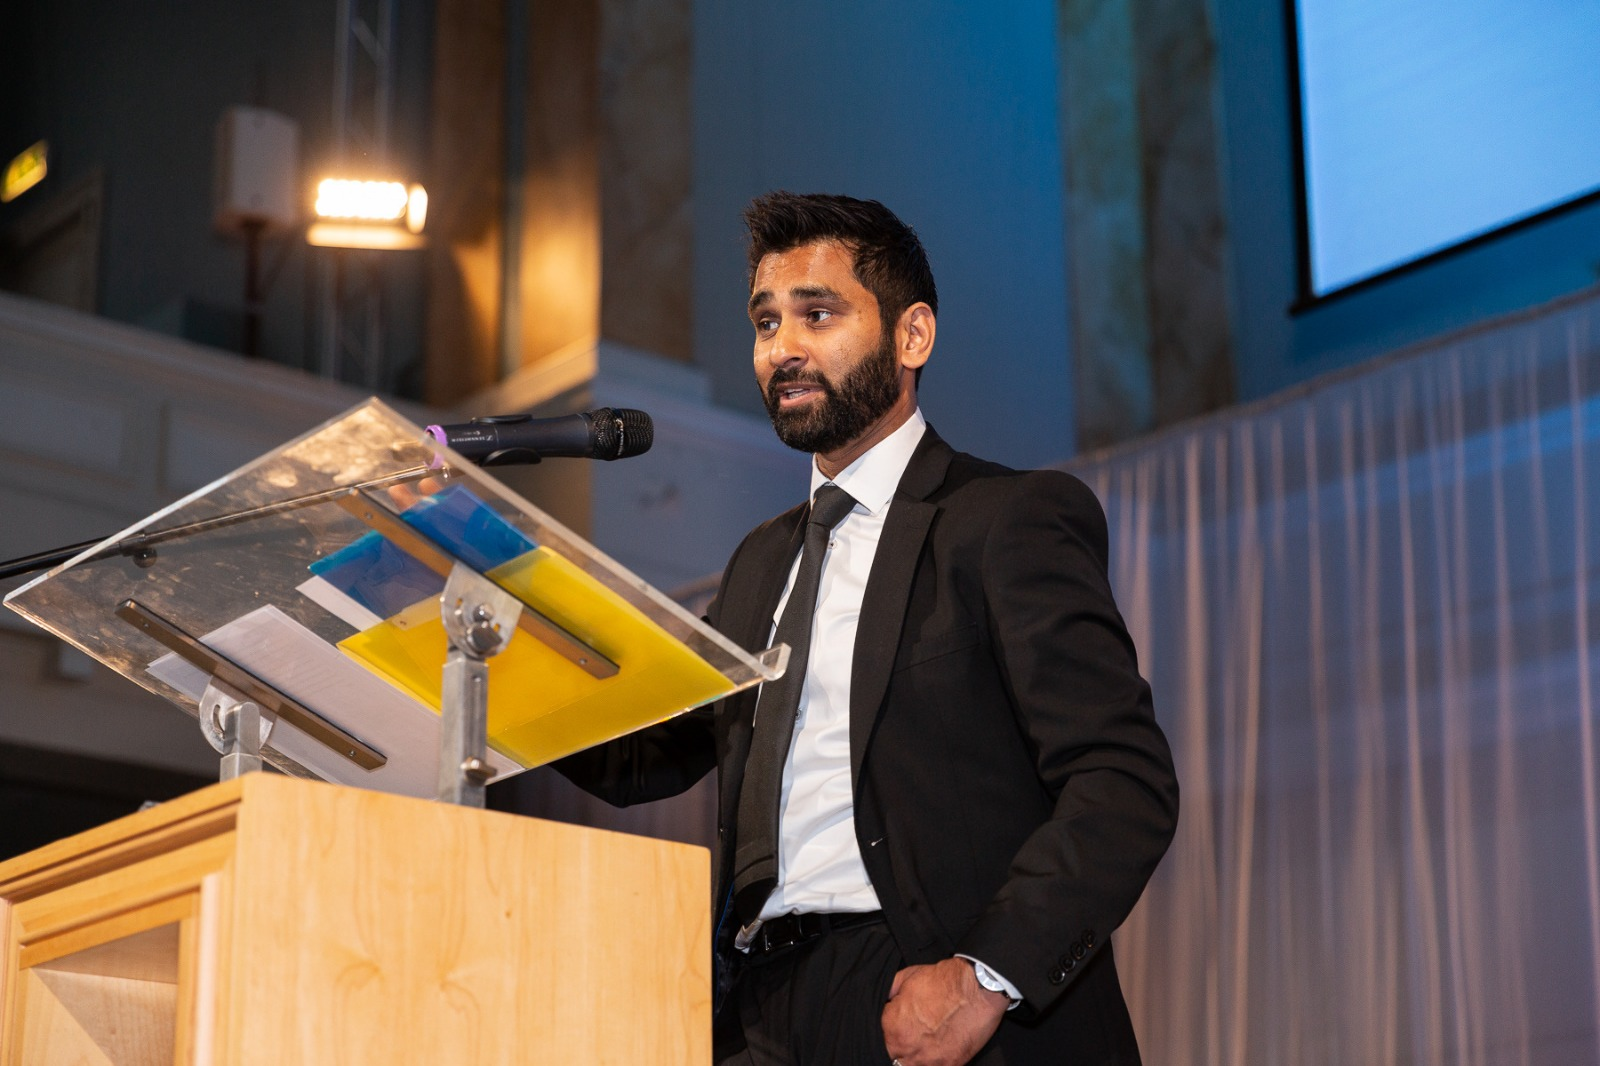 Amit Patel, who lives in London, uses his experiences to raise awareness of how some people with disabilities are treated in public.